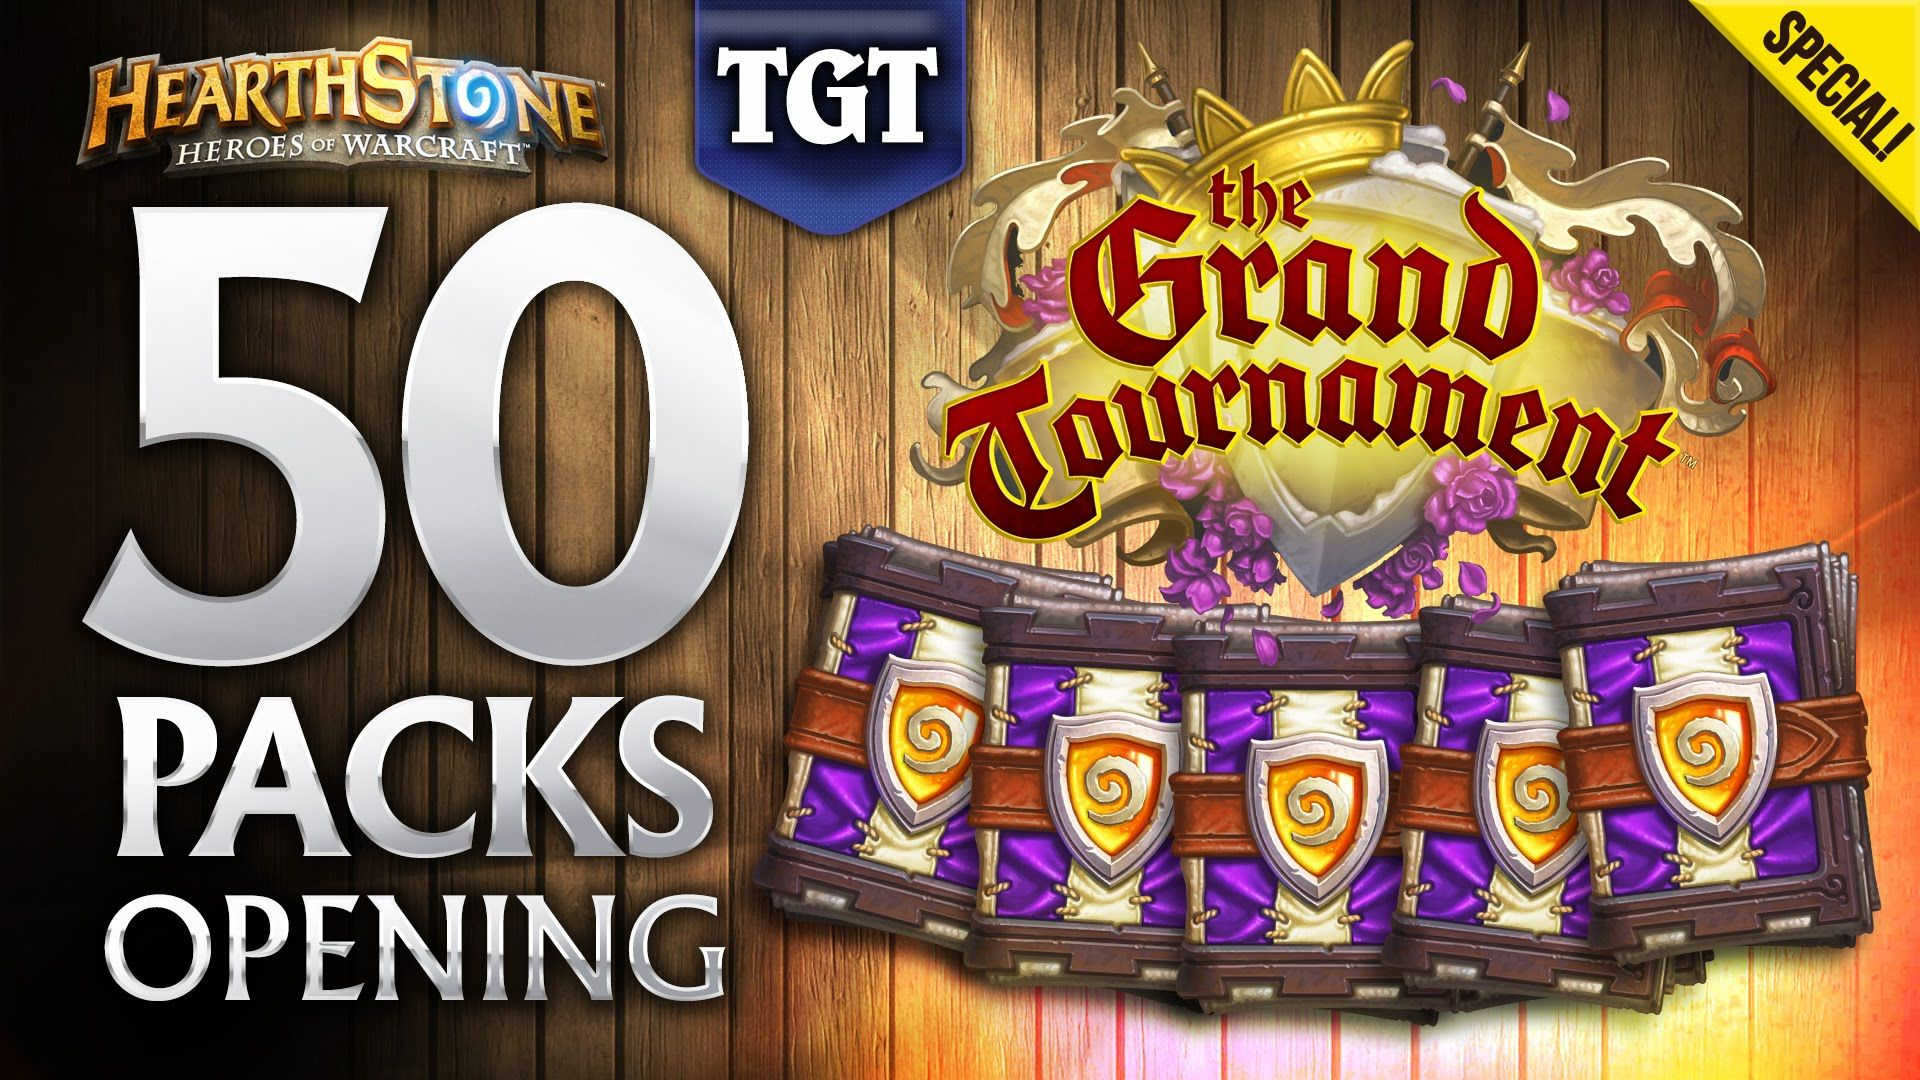 50 tgt hearthstone packs opening 4 new legendary cards